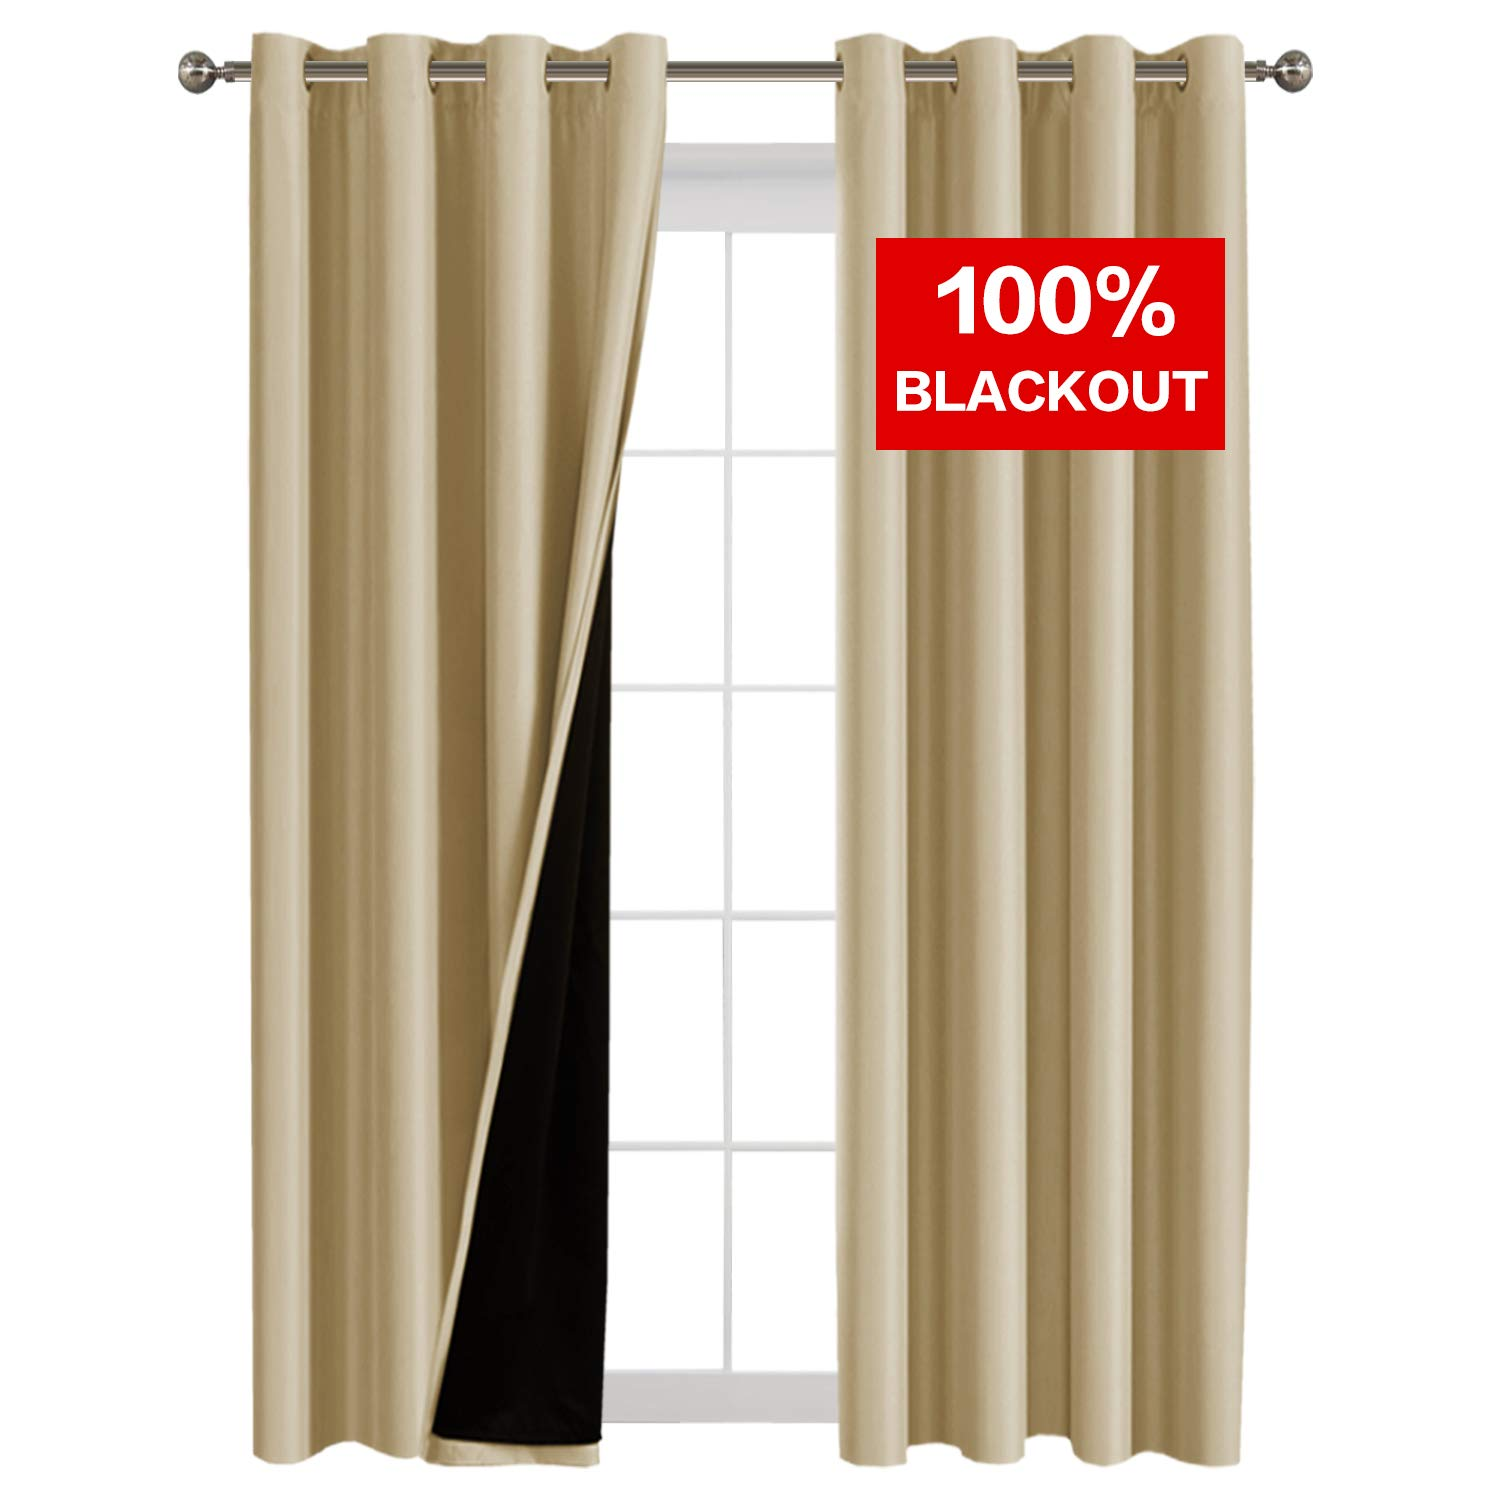 Flamingo P Full Blackout Wheat Curtains Faux Silk Satin with Black Liner Thermal Insulated Window Treatment Panels, Grommet Top (52 x 108 Inch, Set of 2)